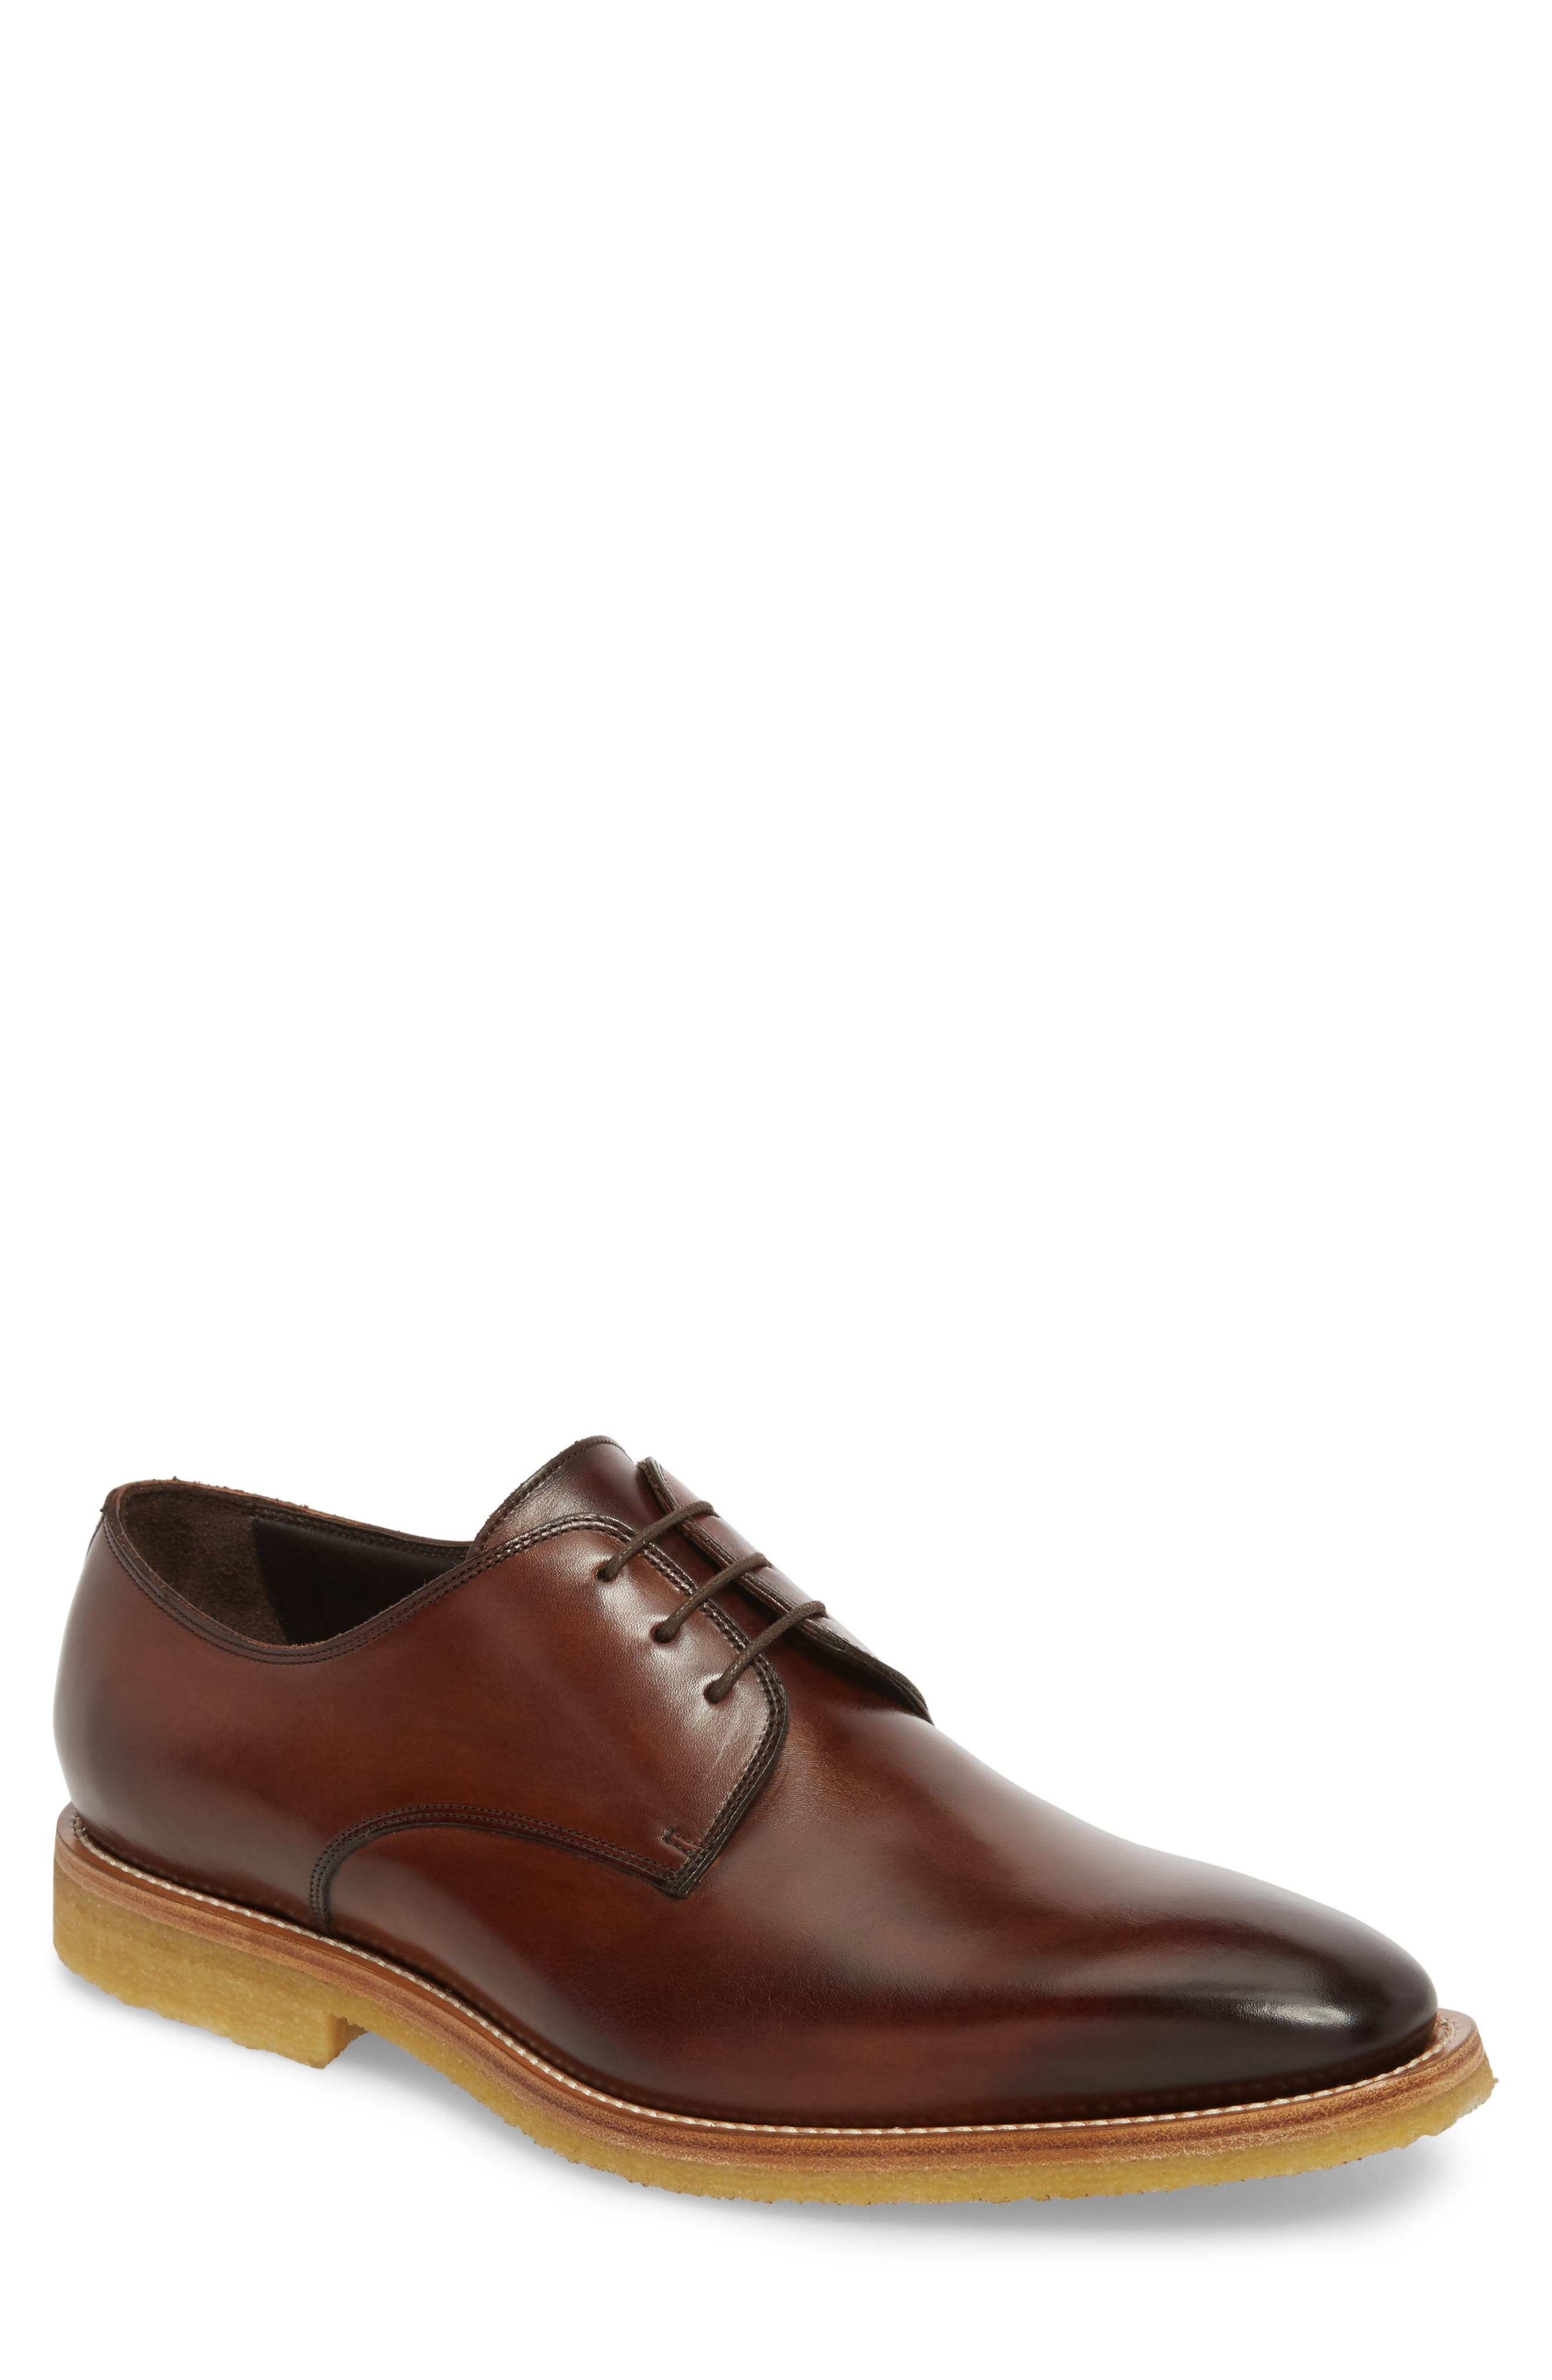 Caruso Plain Toe Derby,                         Main,                         color, Chestnut Leather